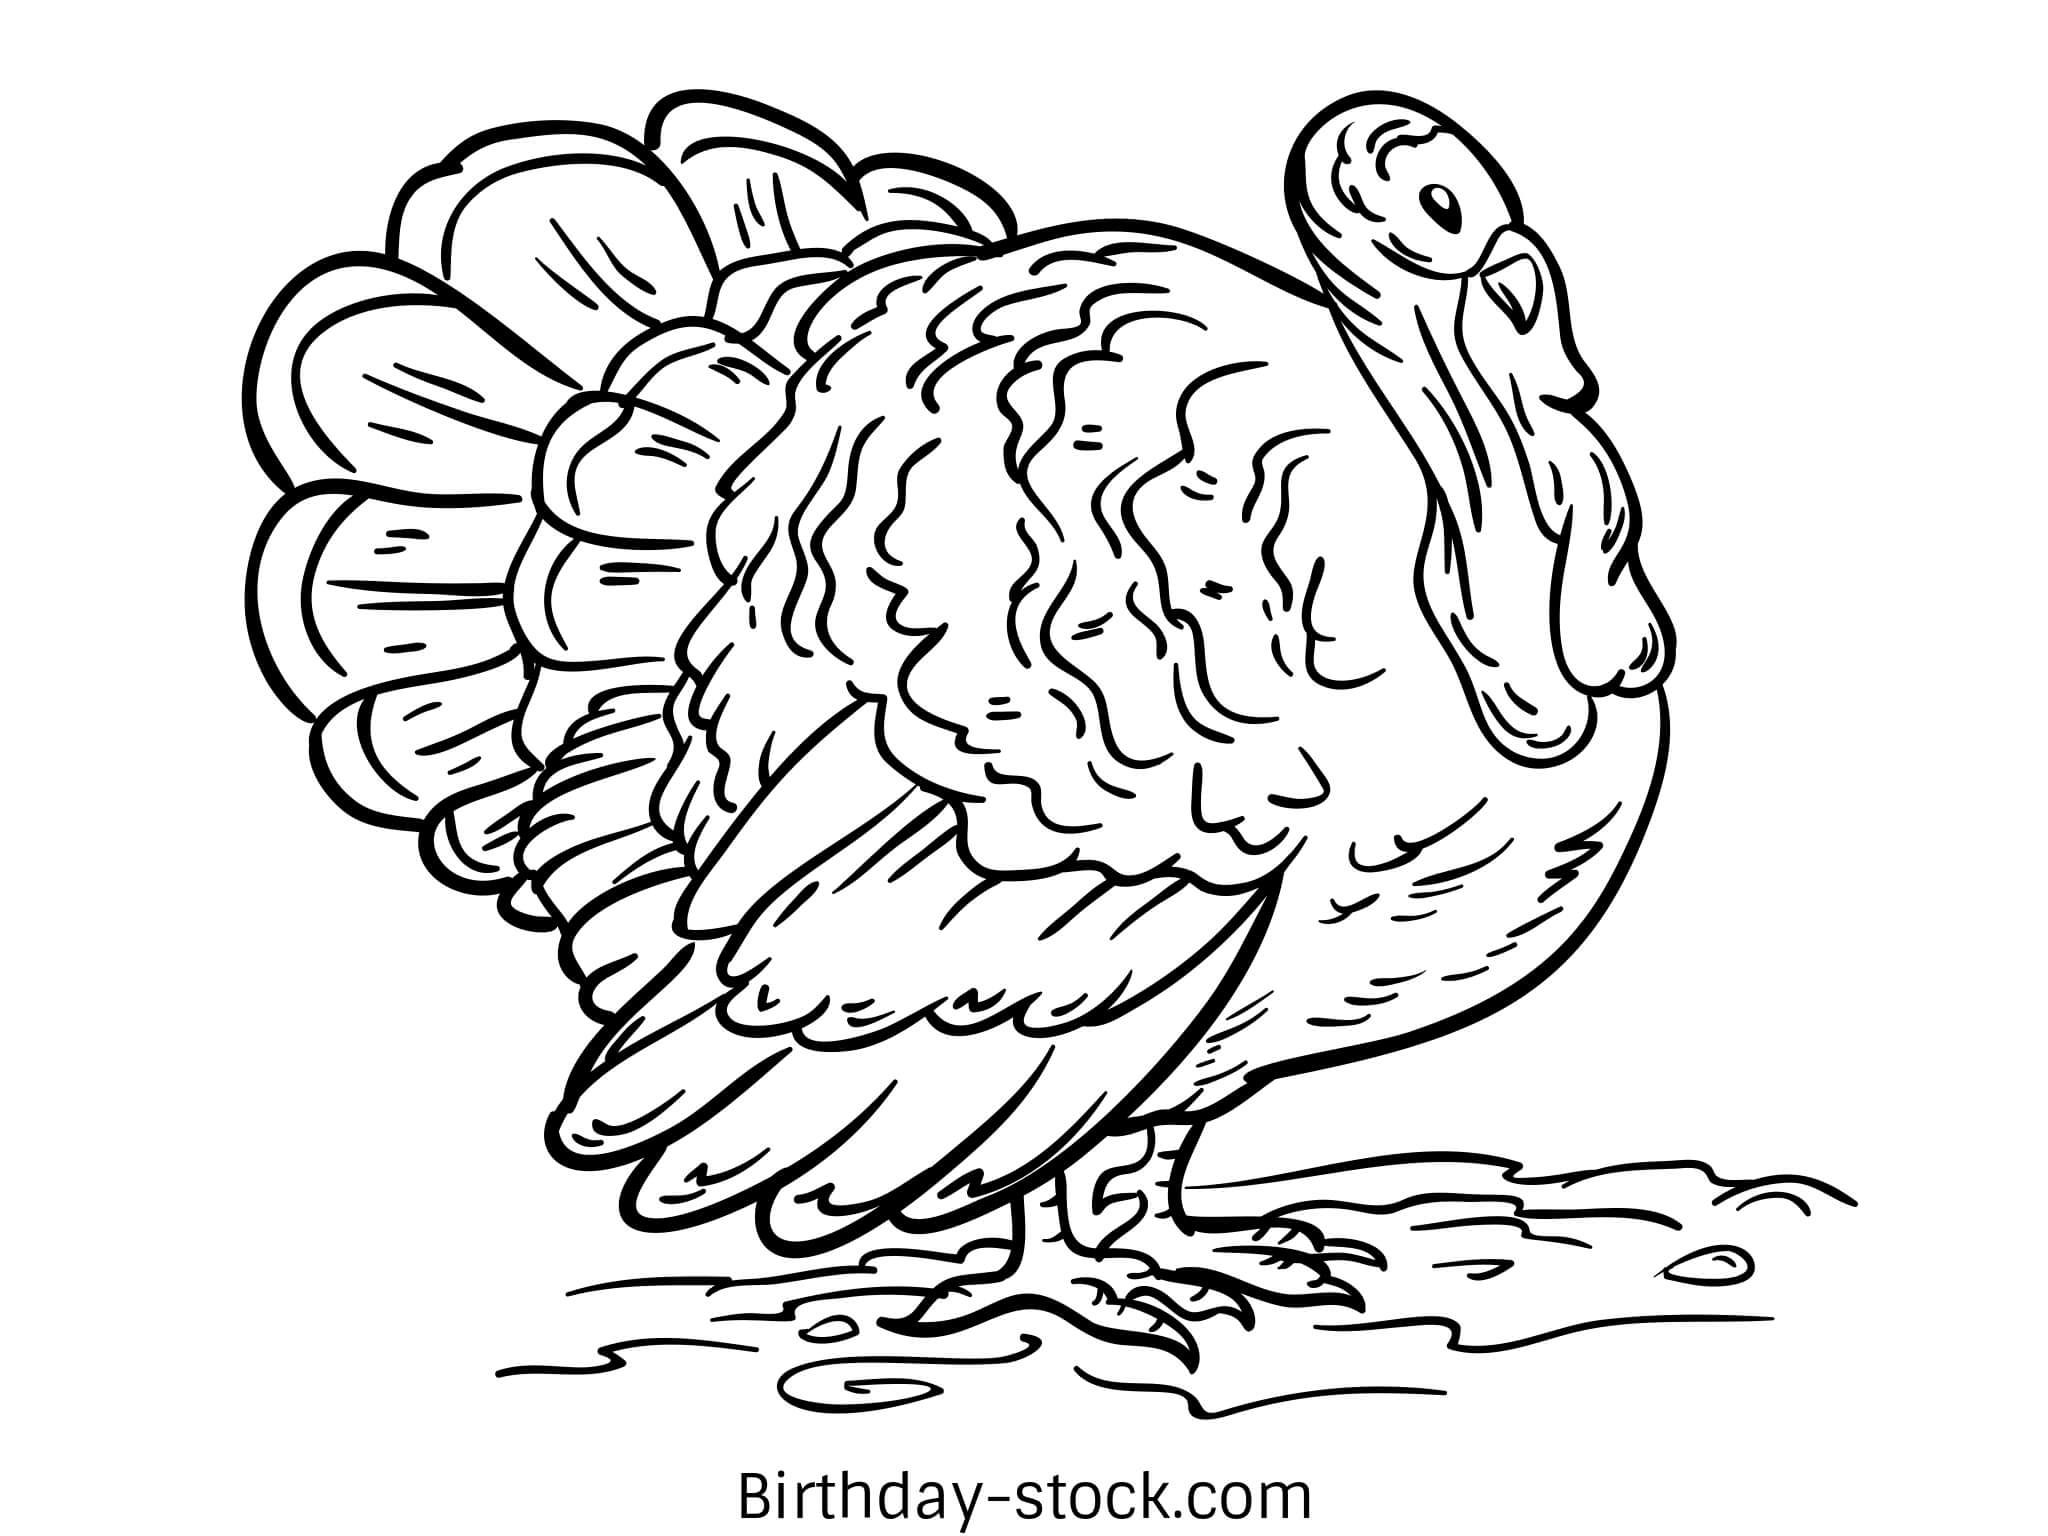 33 Thanksgiving Coloring Pages Sheets Free Printable 2020 For Toddlers Kids Thanksgiving Coloring Pages Thanksgiving Worksheets Thanksgiving Coloring Book